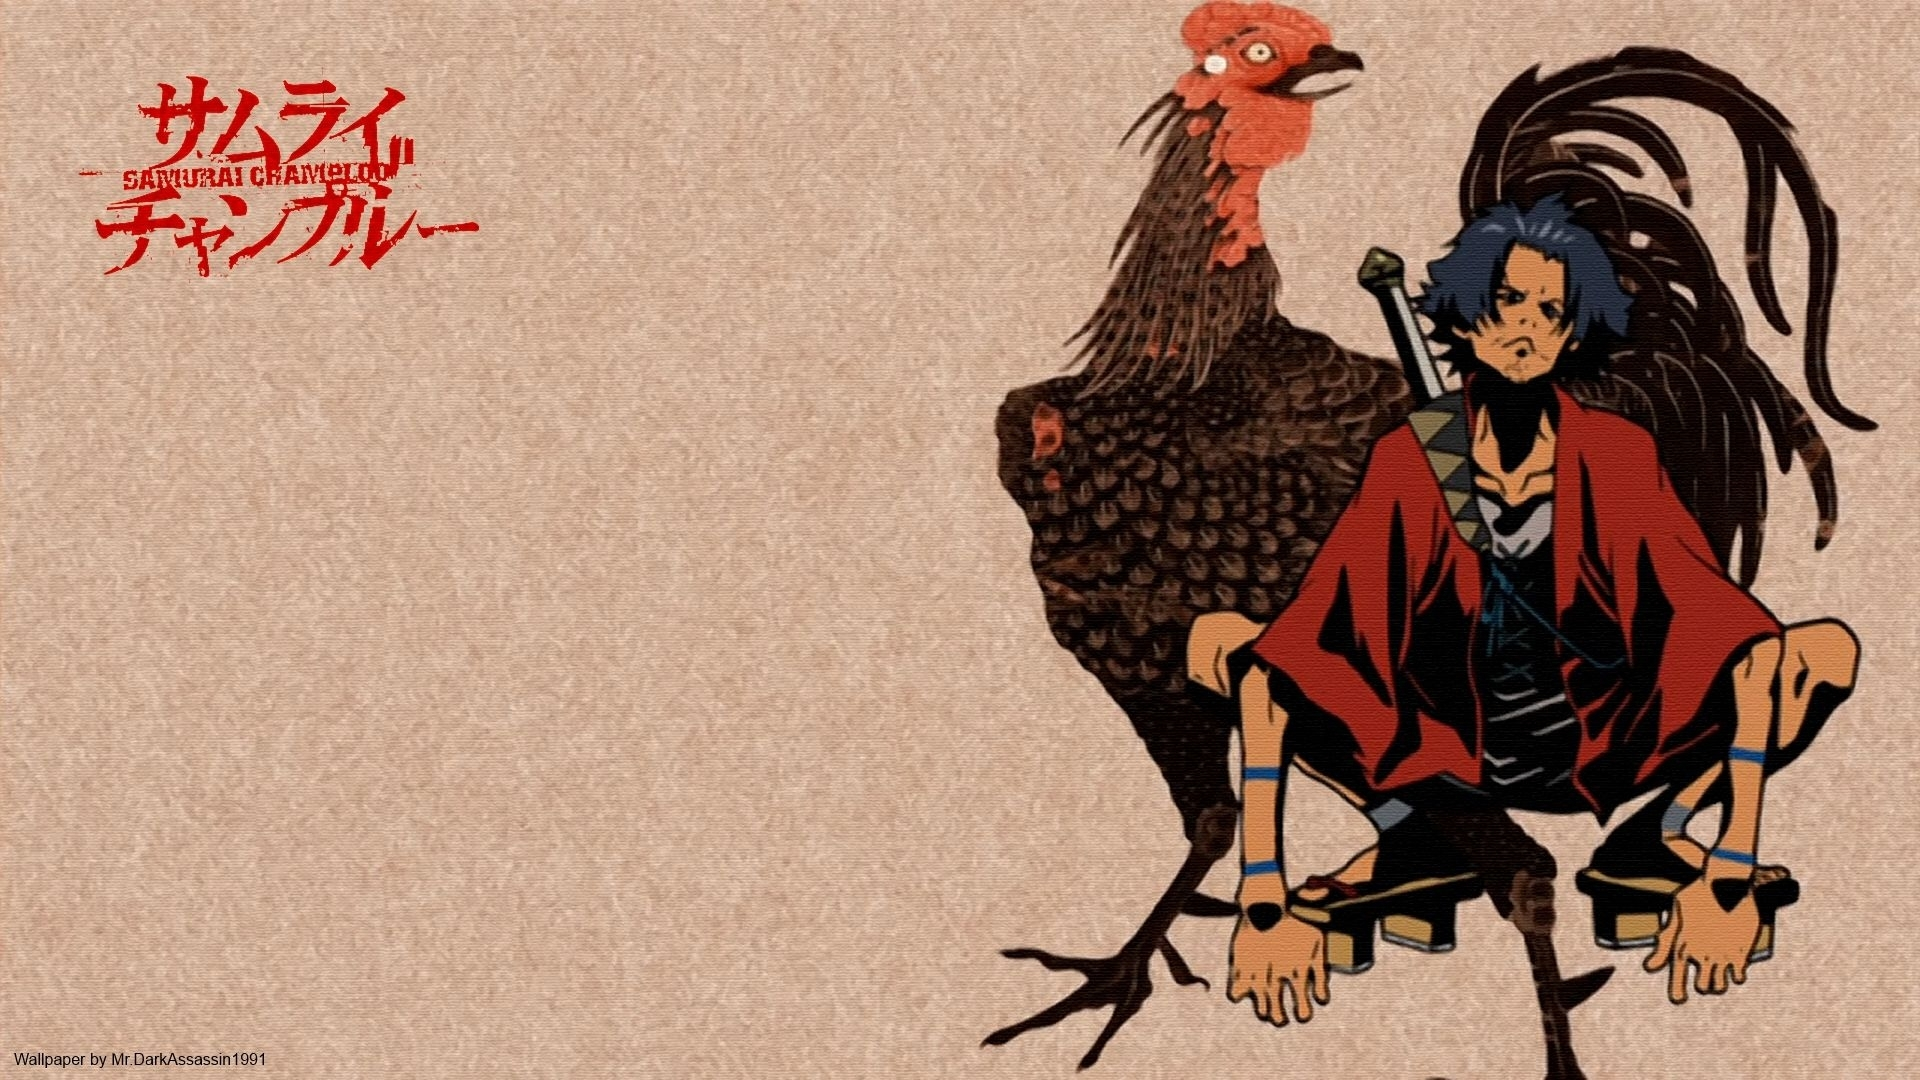 mugen - samurai champloo | anime and manga | pinterest | samourai et